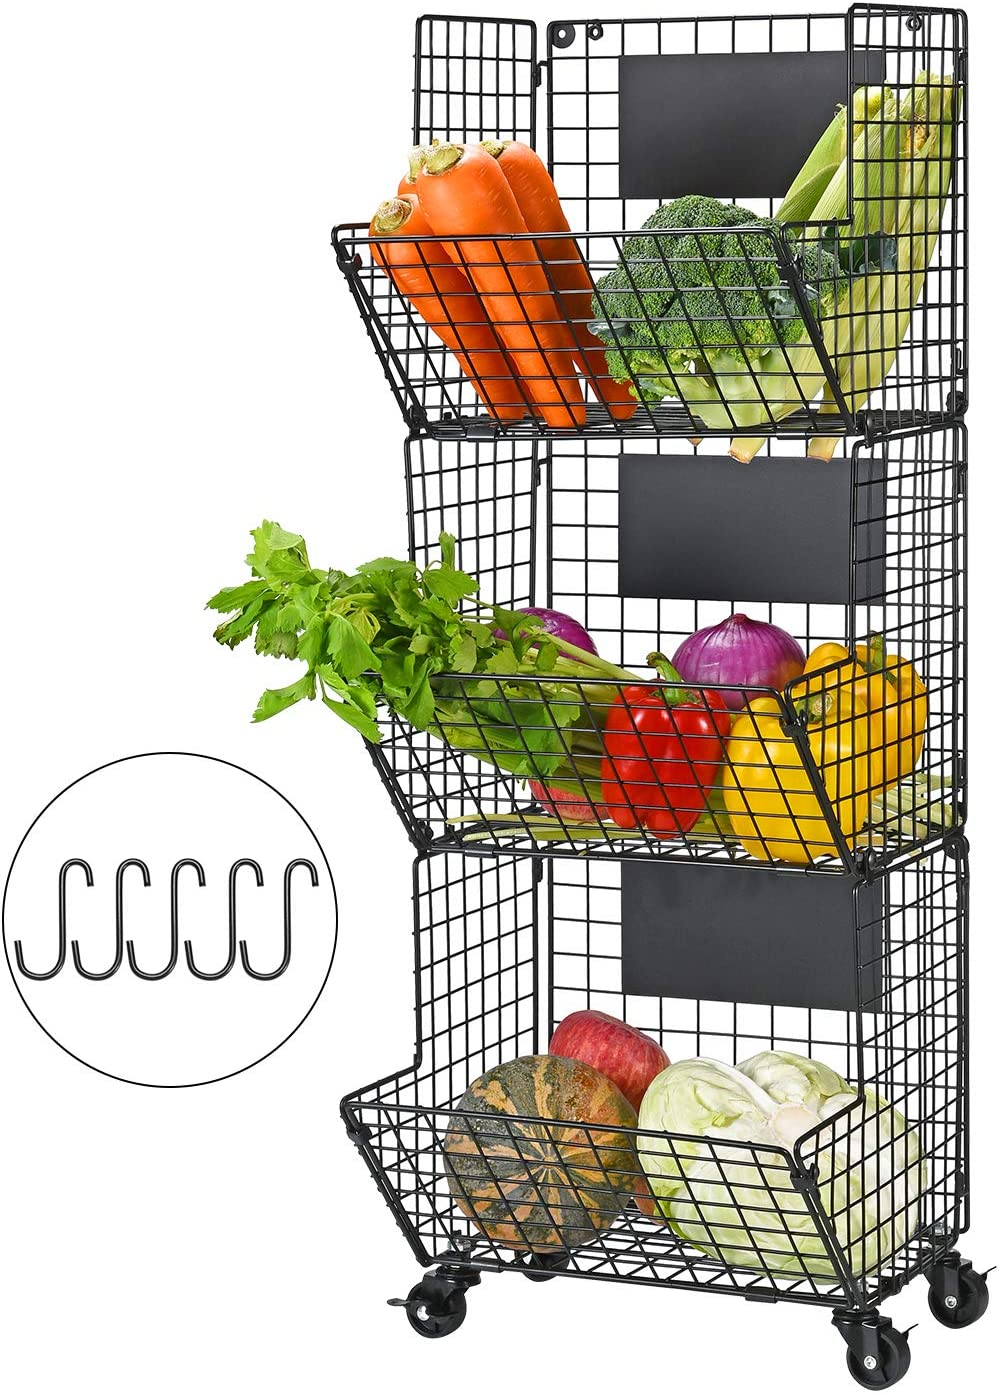 YUKOOL 3-Tier Hanging Wire Baskets with Wheel and Adjustable Chalkboards, Metal Wall-Mounted Storage and Organization for Kitchen, Fruit, Vegetables, Toiletries, Bathroom